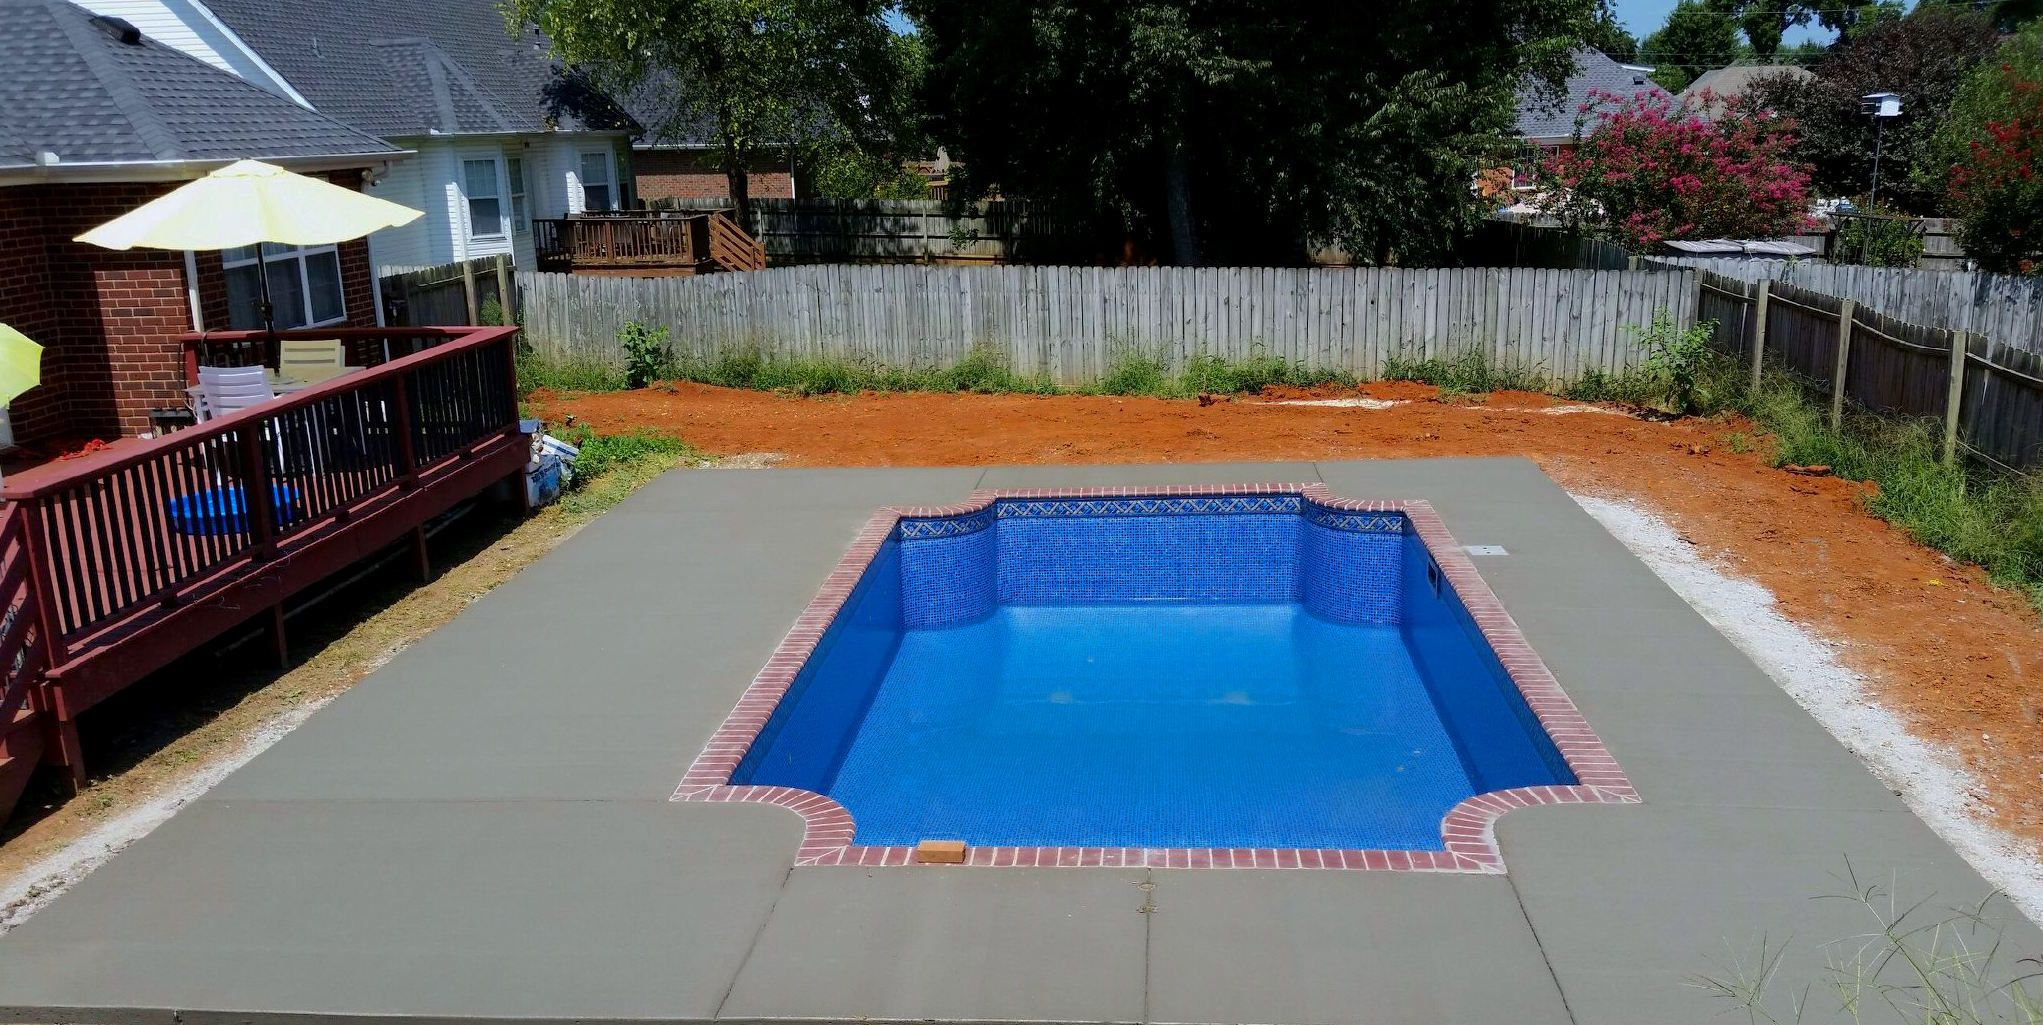 Pool And Spa Depot 14 X 25 Rectangle W Rounded Corners Concrete Wall Pool Red Brick Coping Broom Finished Co Concrete Pool Swimming Pools Pool Coping